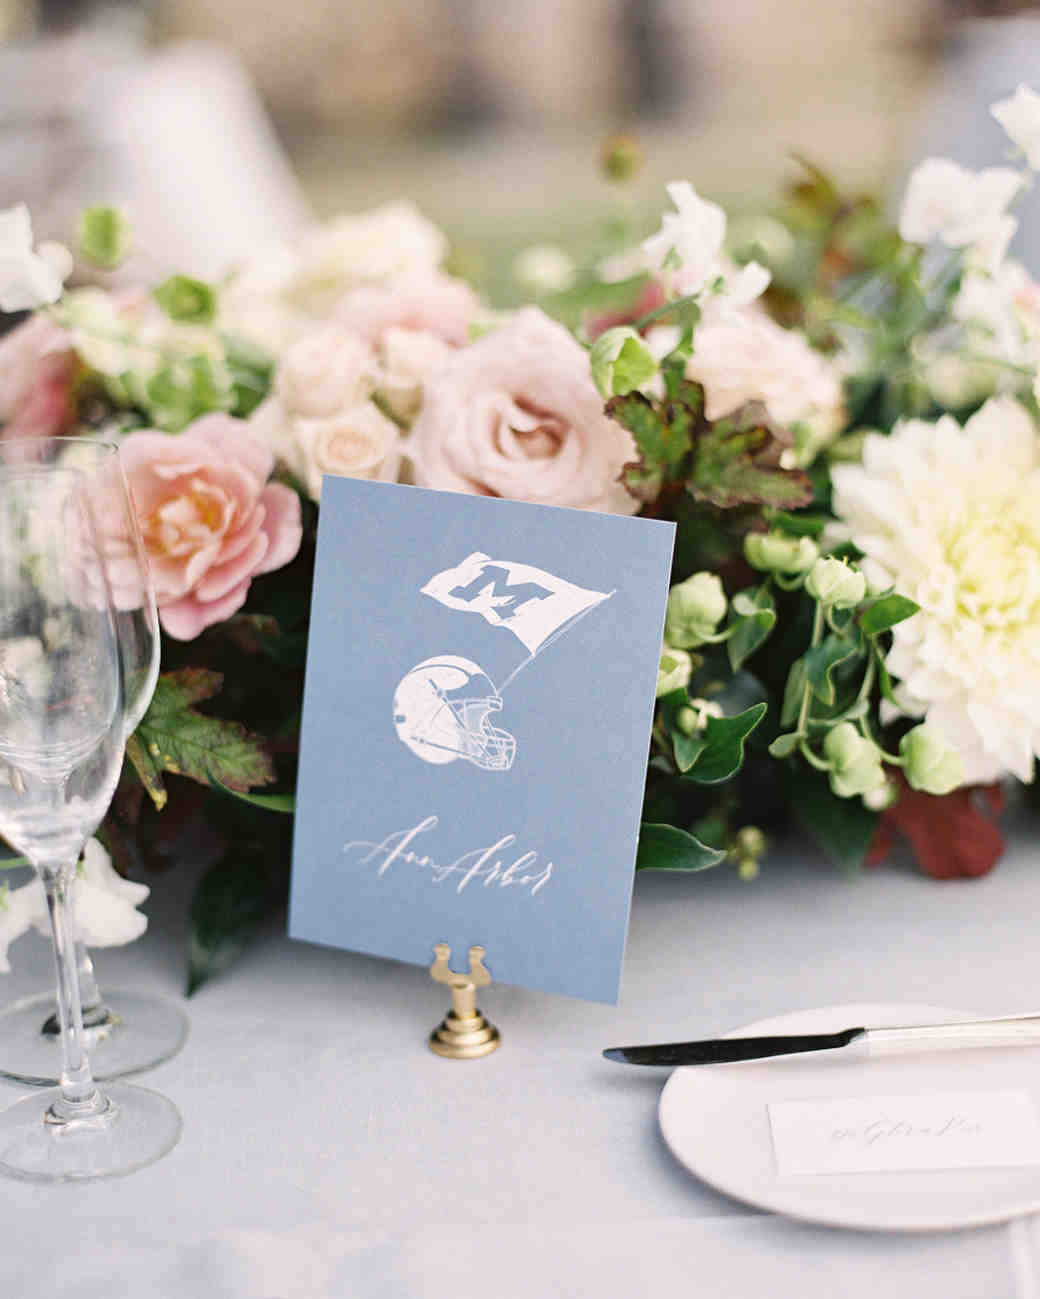 wedding decor sports themed place card blue flowers table